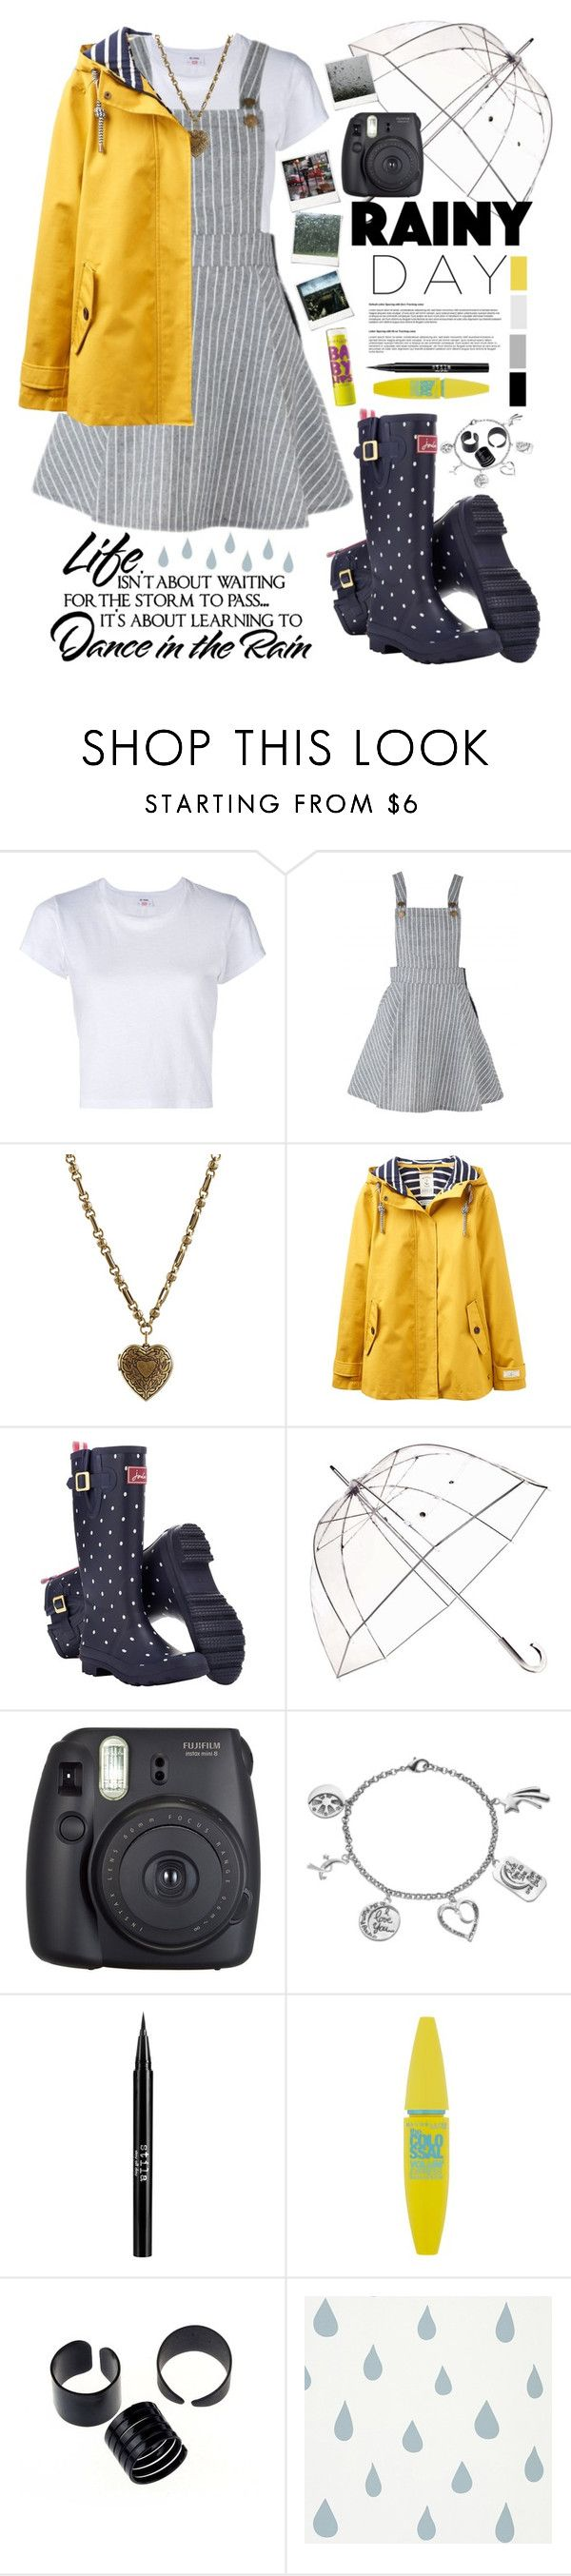 """""""Rainy Day"""" by alltimegabi ❤ liked on Polyvore featuring RE/DONE, Etro, Joules, Totes, Fuji, Polaroid, Love This Life, Stila, Maybelline and cute"""